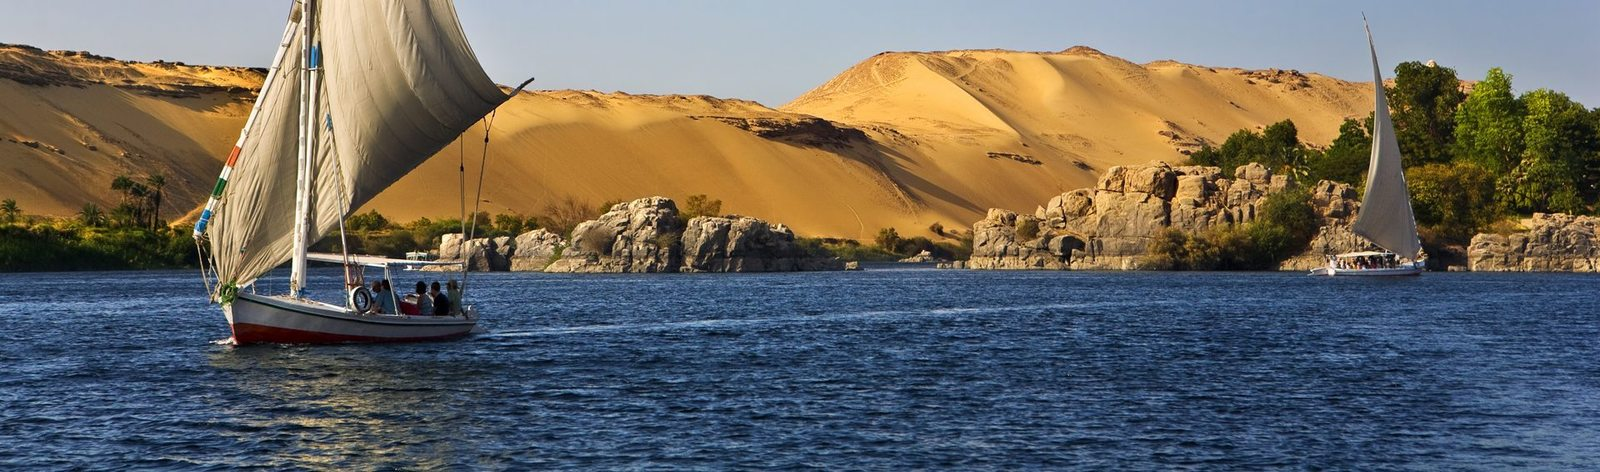 Discover Egypt - Promoting Tourism and Economic Growth